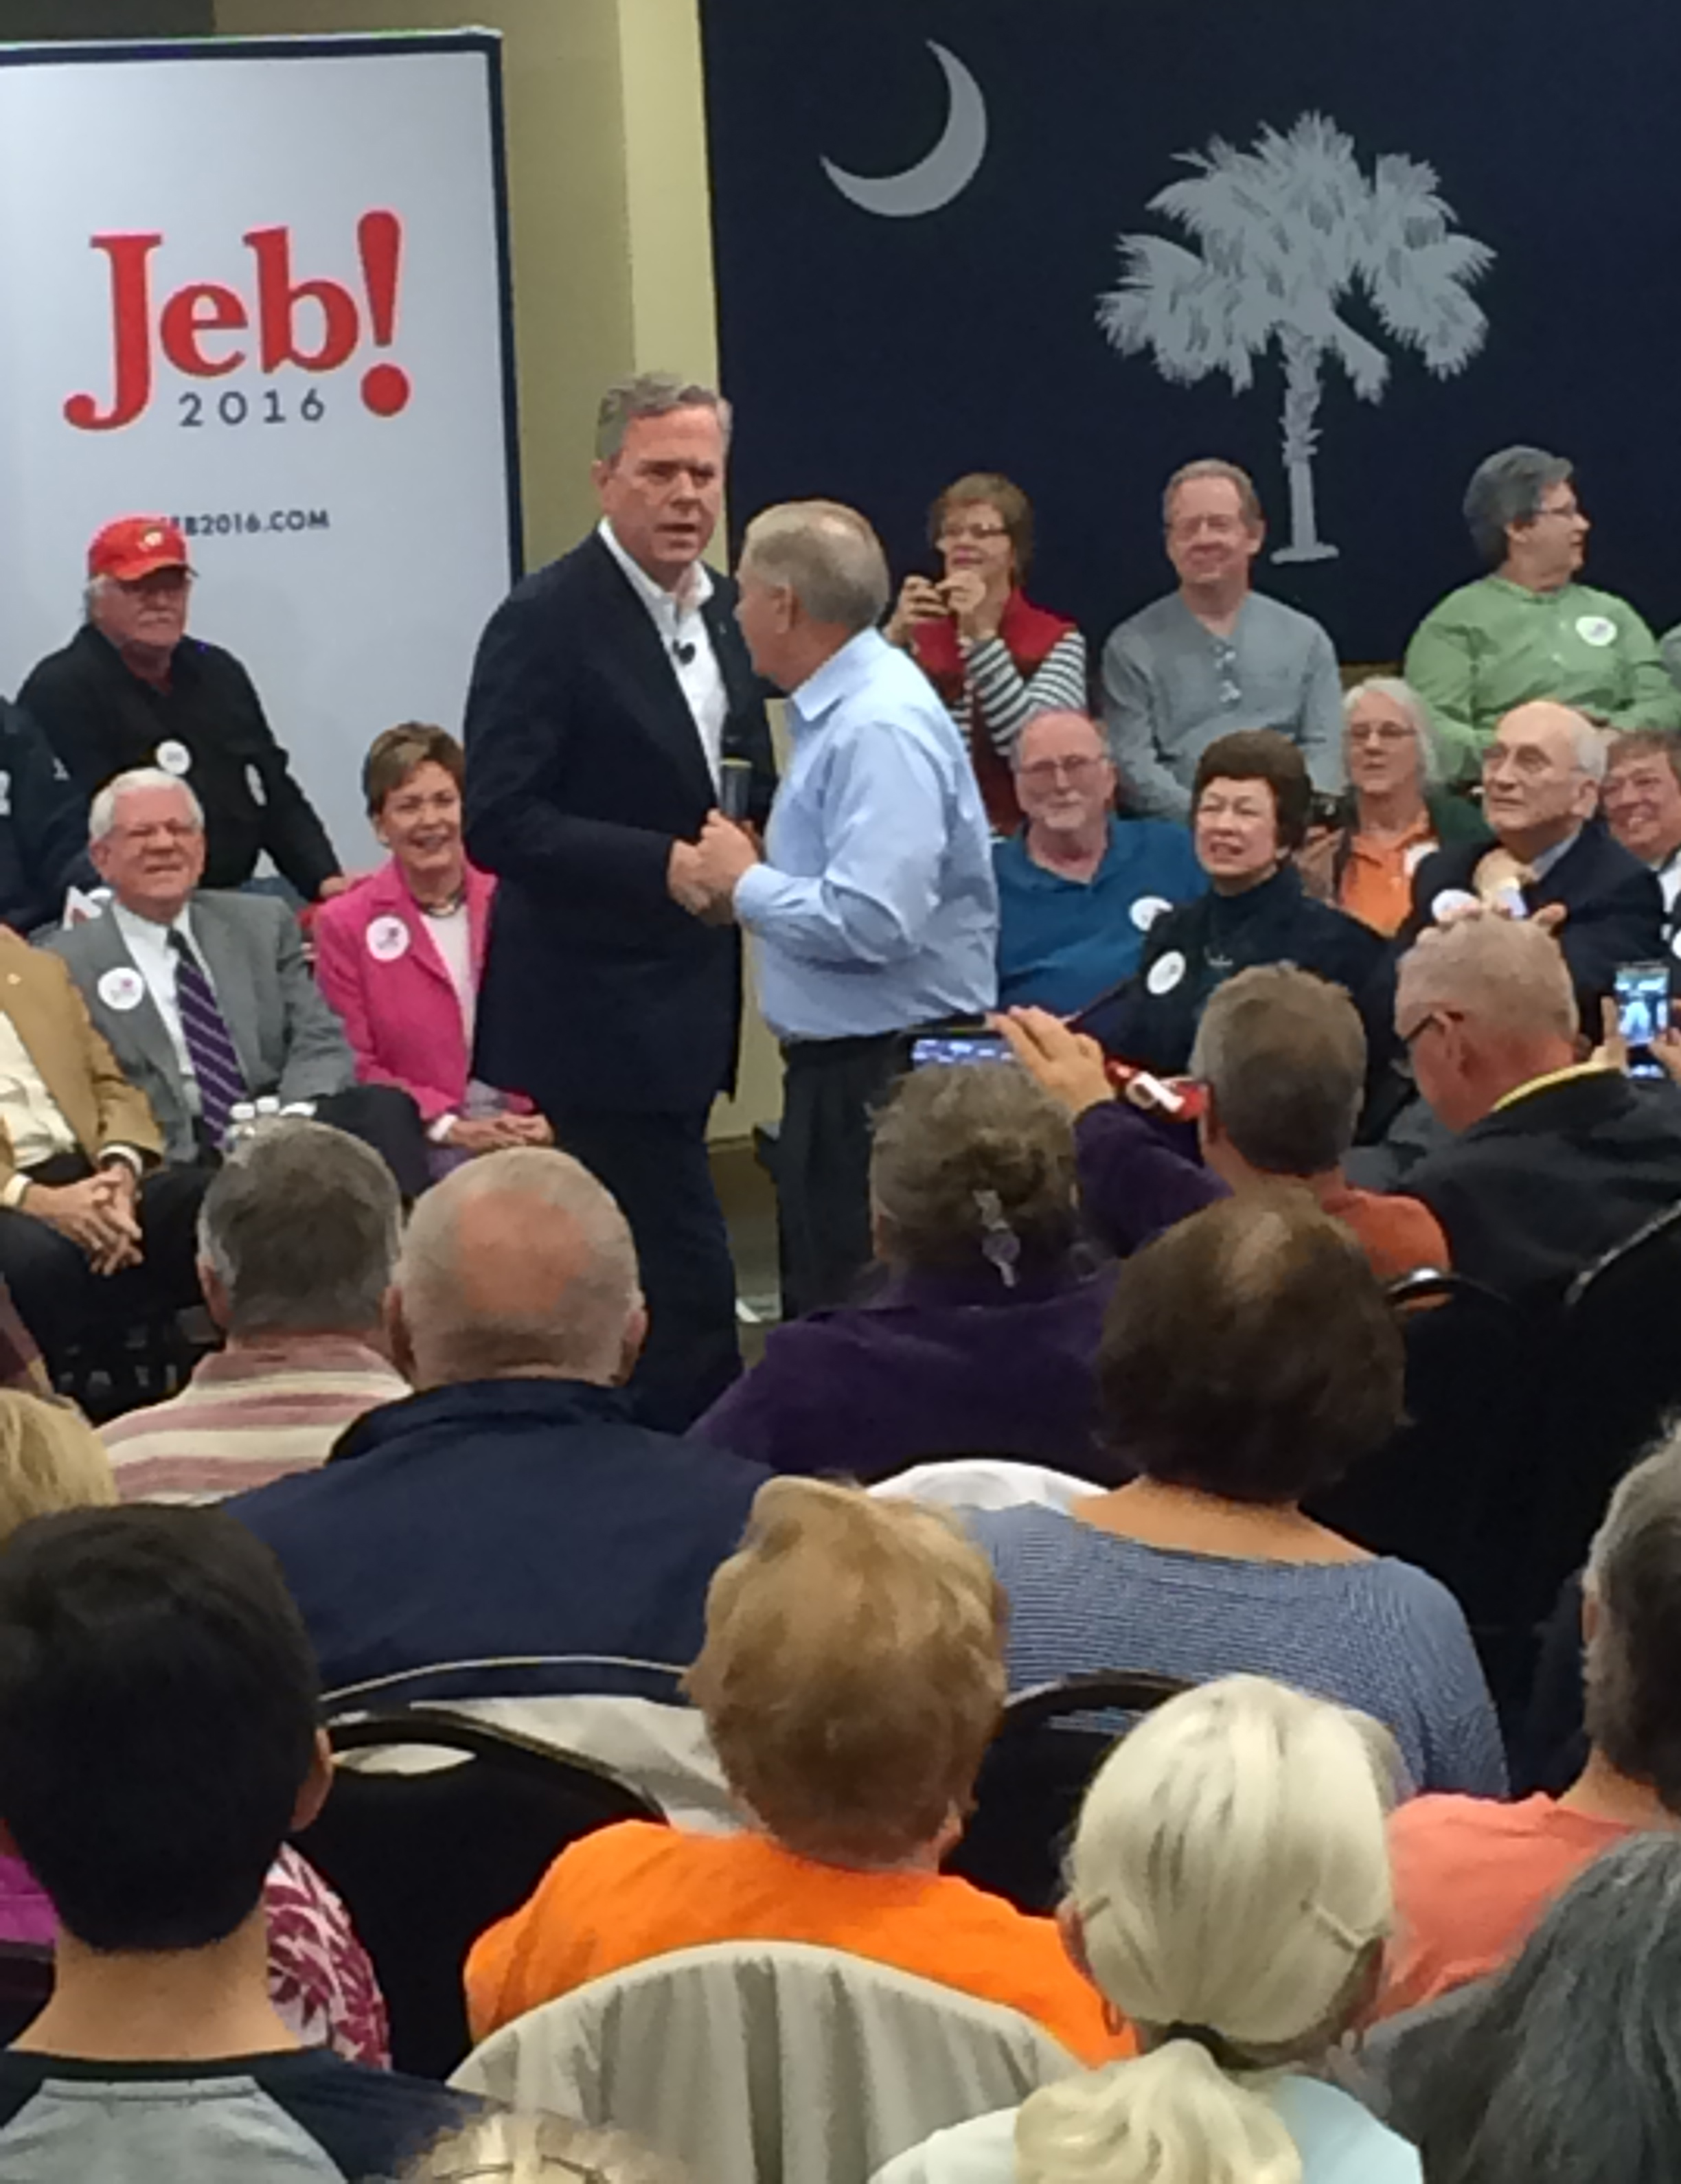 Senator Lindsey Graham turning it over to Jeb Bush.